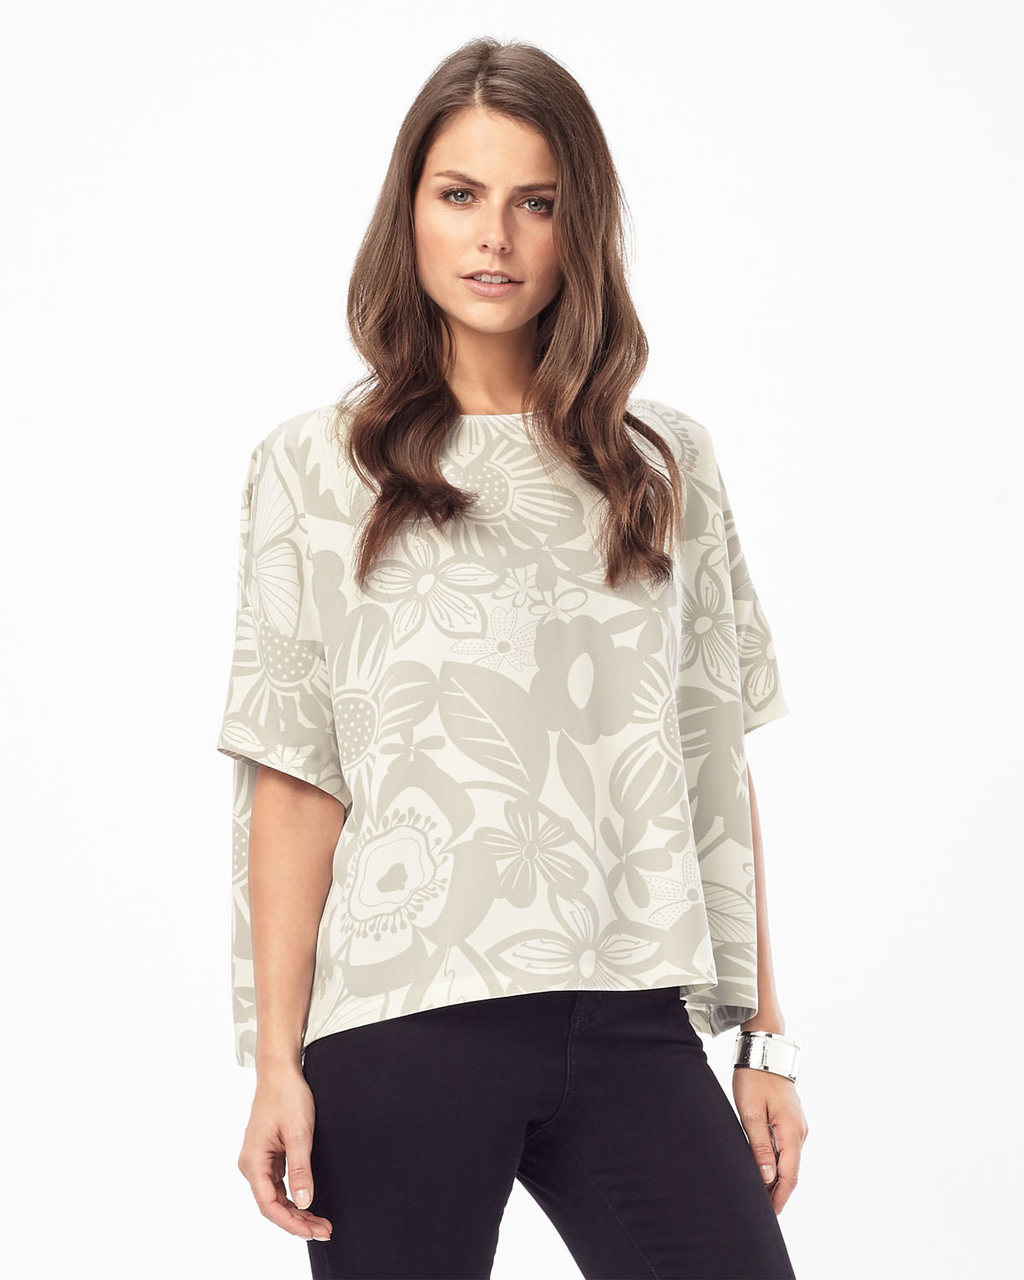 Albany Print Blouse - style: blouse; secondary colour: ivory/cream; predominant colour: stone; occasions: casual; length: standard; fibres: polyester/polyamide - stretch; fit: straight cut; neckline: crew; sleeve length: short sleeve; sleeve style: standard; pattern type: fabric; pattern: patterned/print; texture group: jersey - stretchy/drapey; pattern size: big & busy (top); season: s/s 2016; wardrobe: highlight